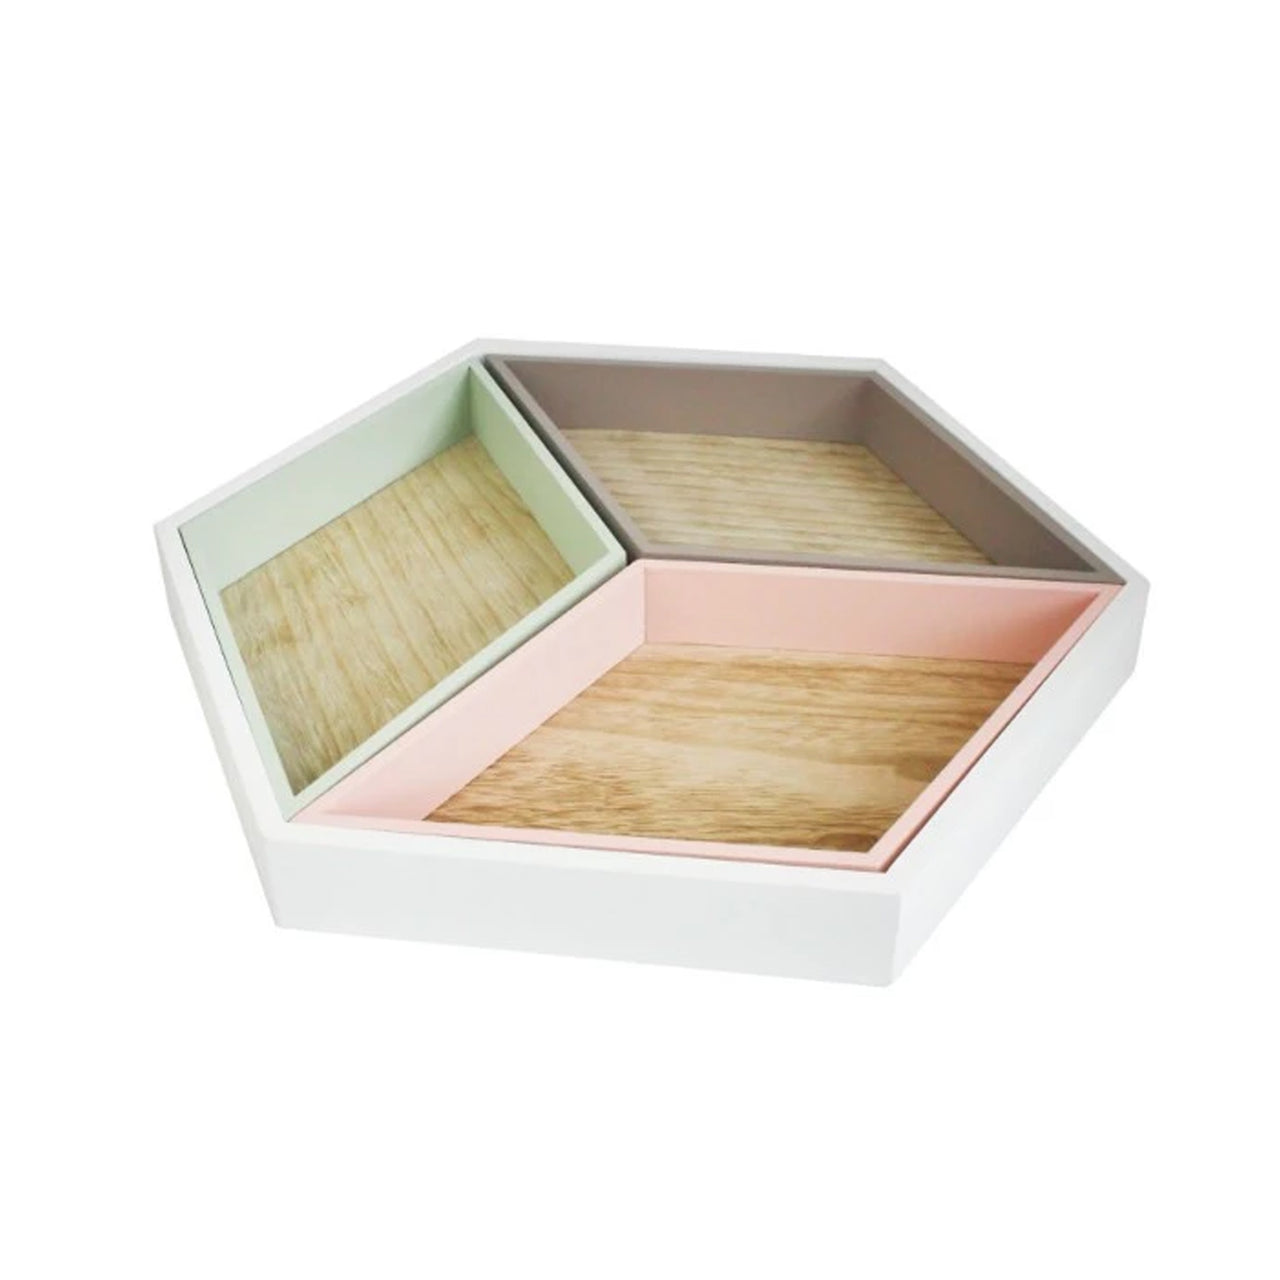 Hexagonal Wooden Tray - Pack of 4